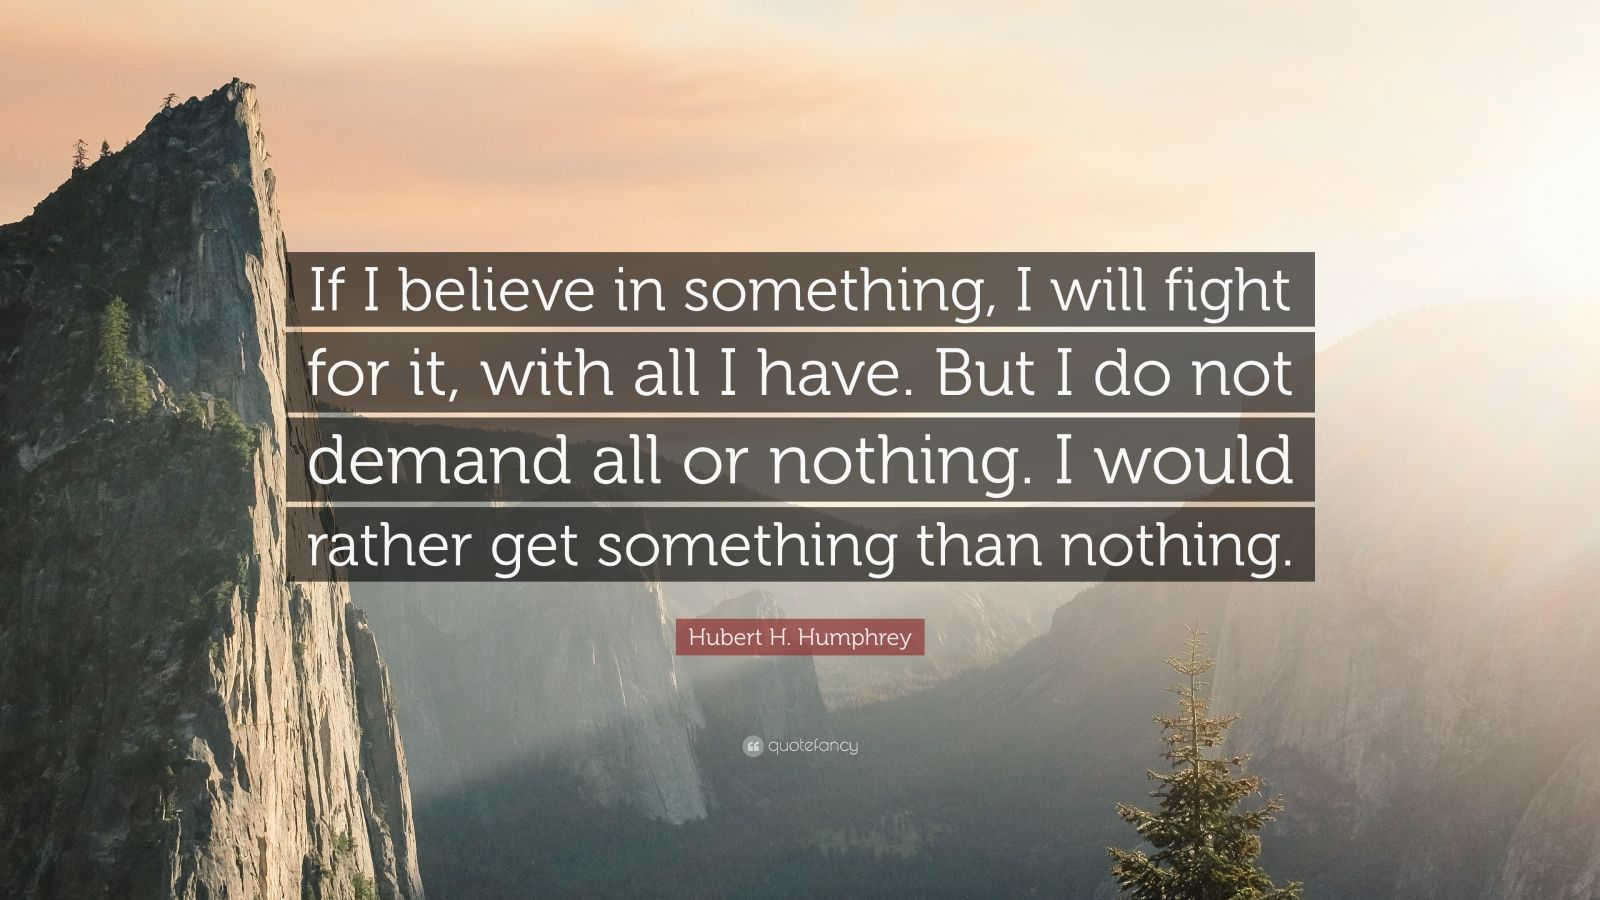 """Hubert H. Humphrey Quote: """"If I believe in something, I will fight for it, with all I have. But I do not demand all or nothing. I would rather get something than nothing."""""""